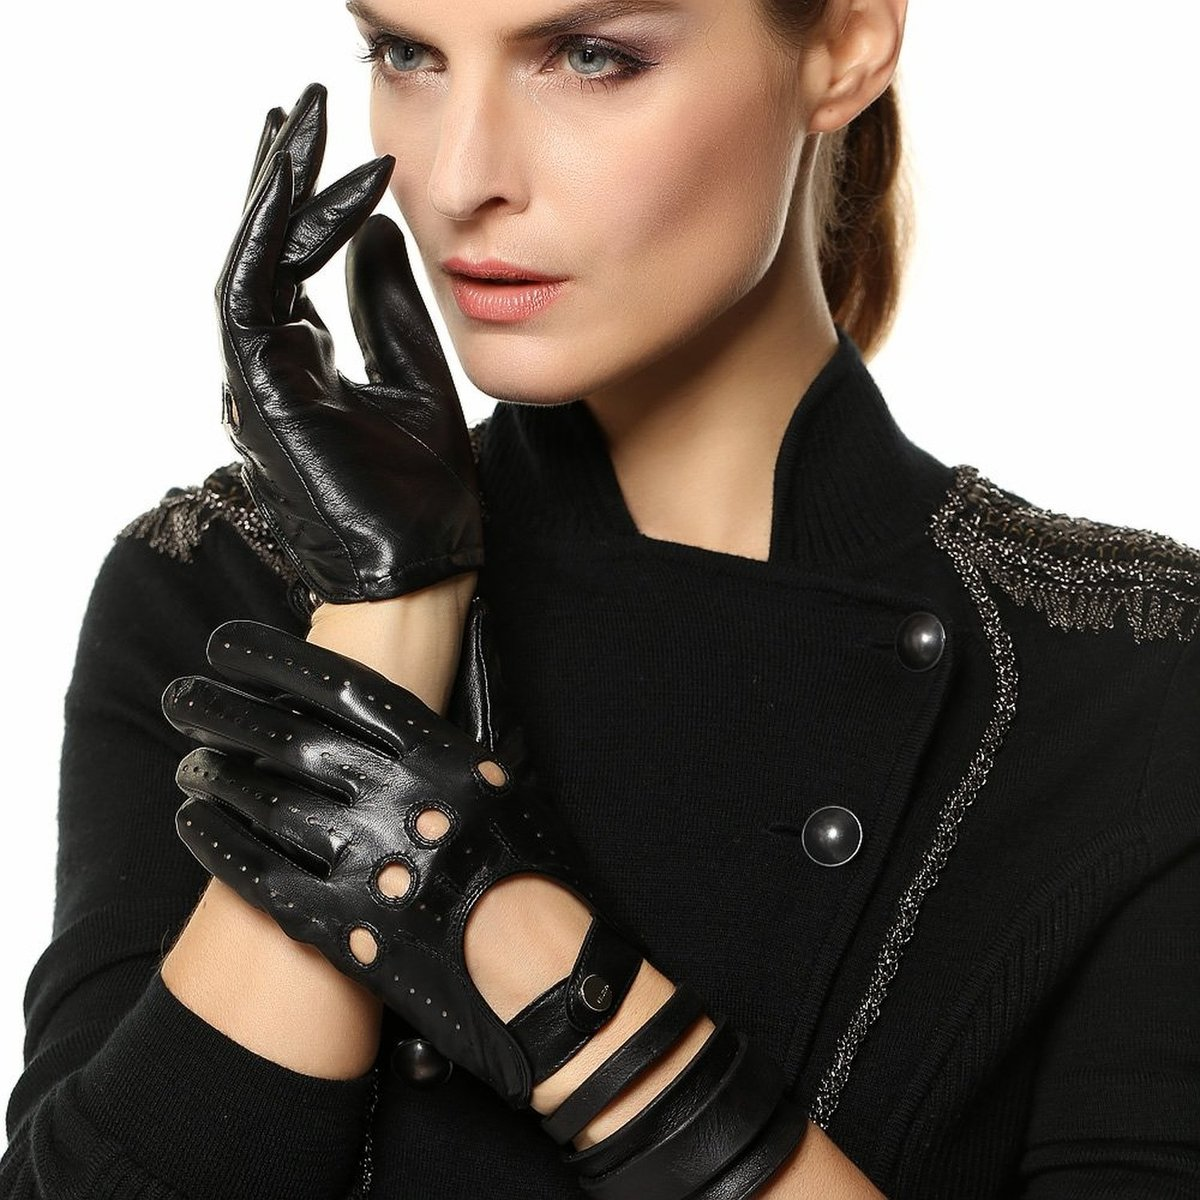 Photo sexey gloves for you night